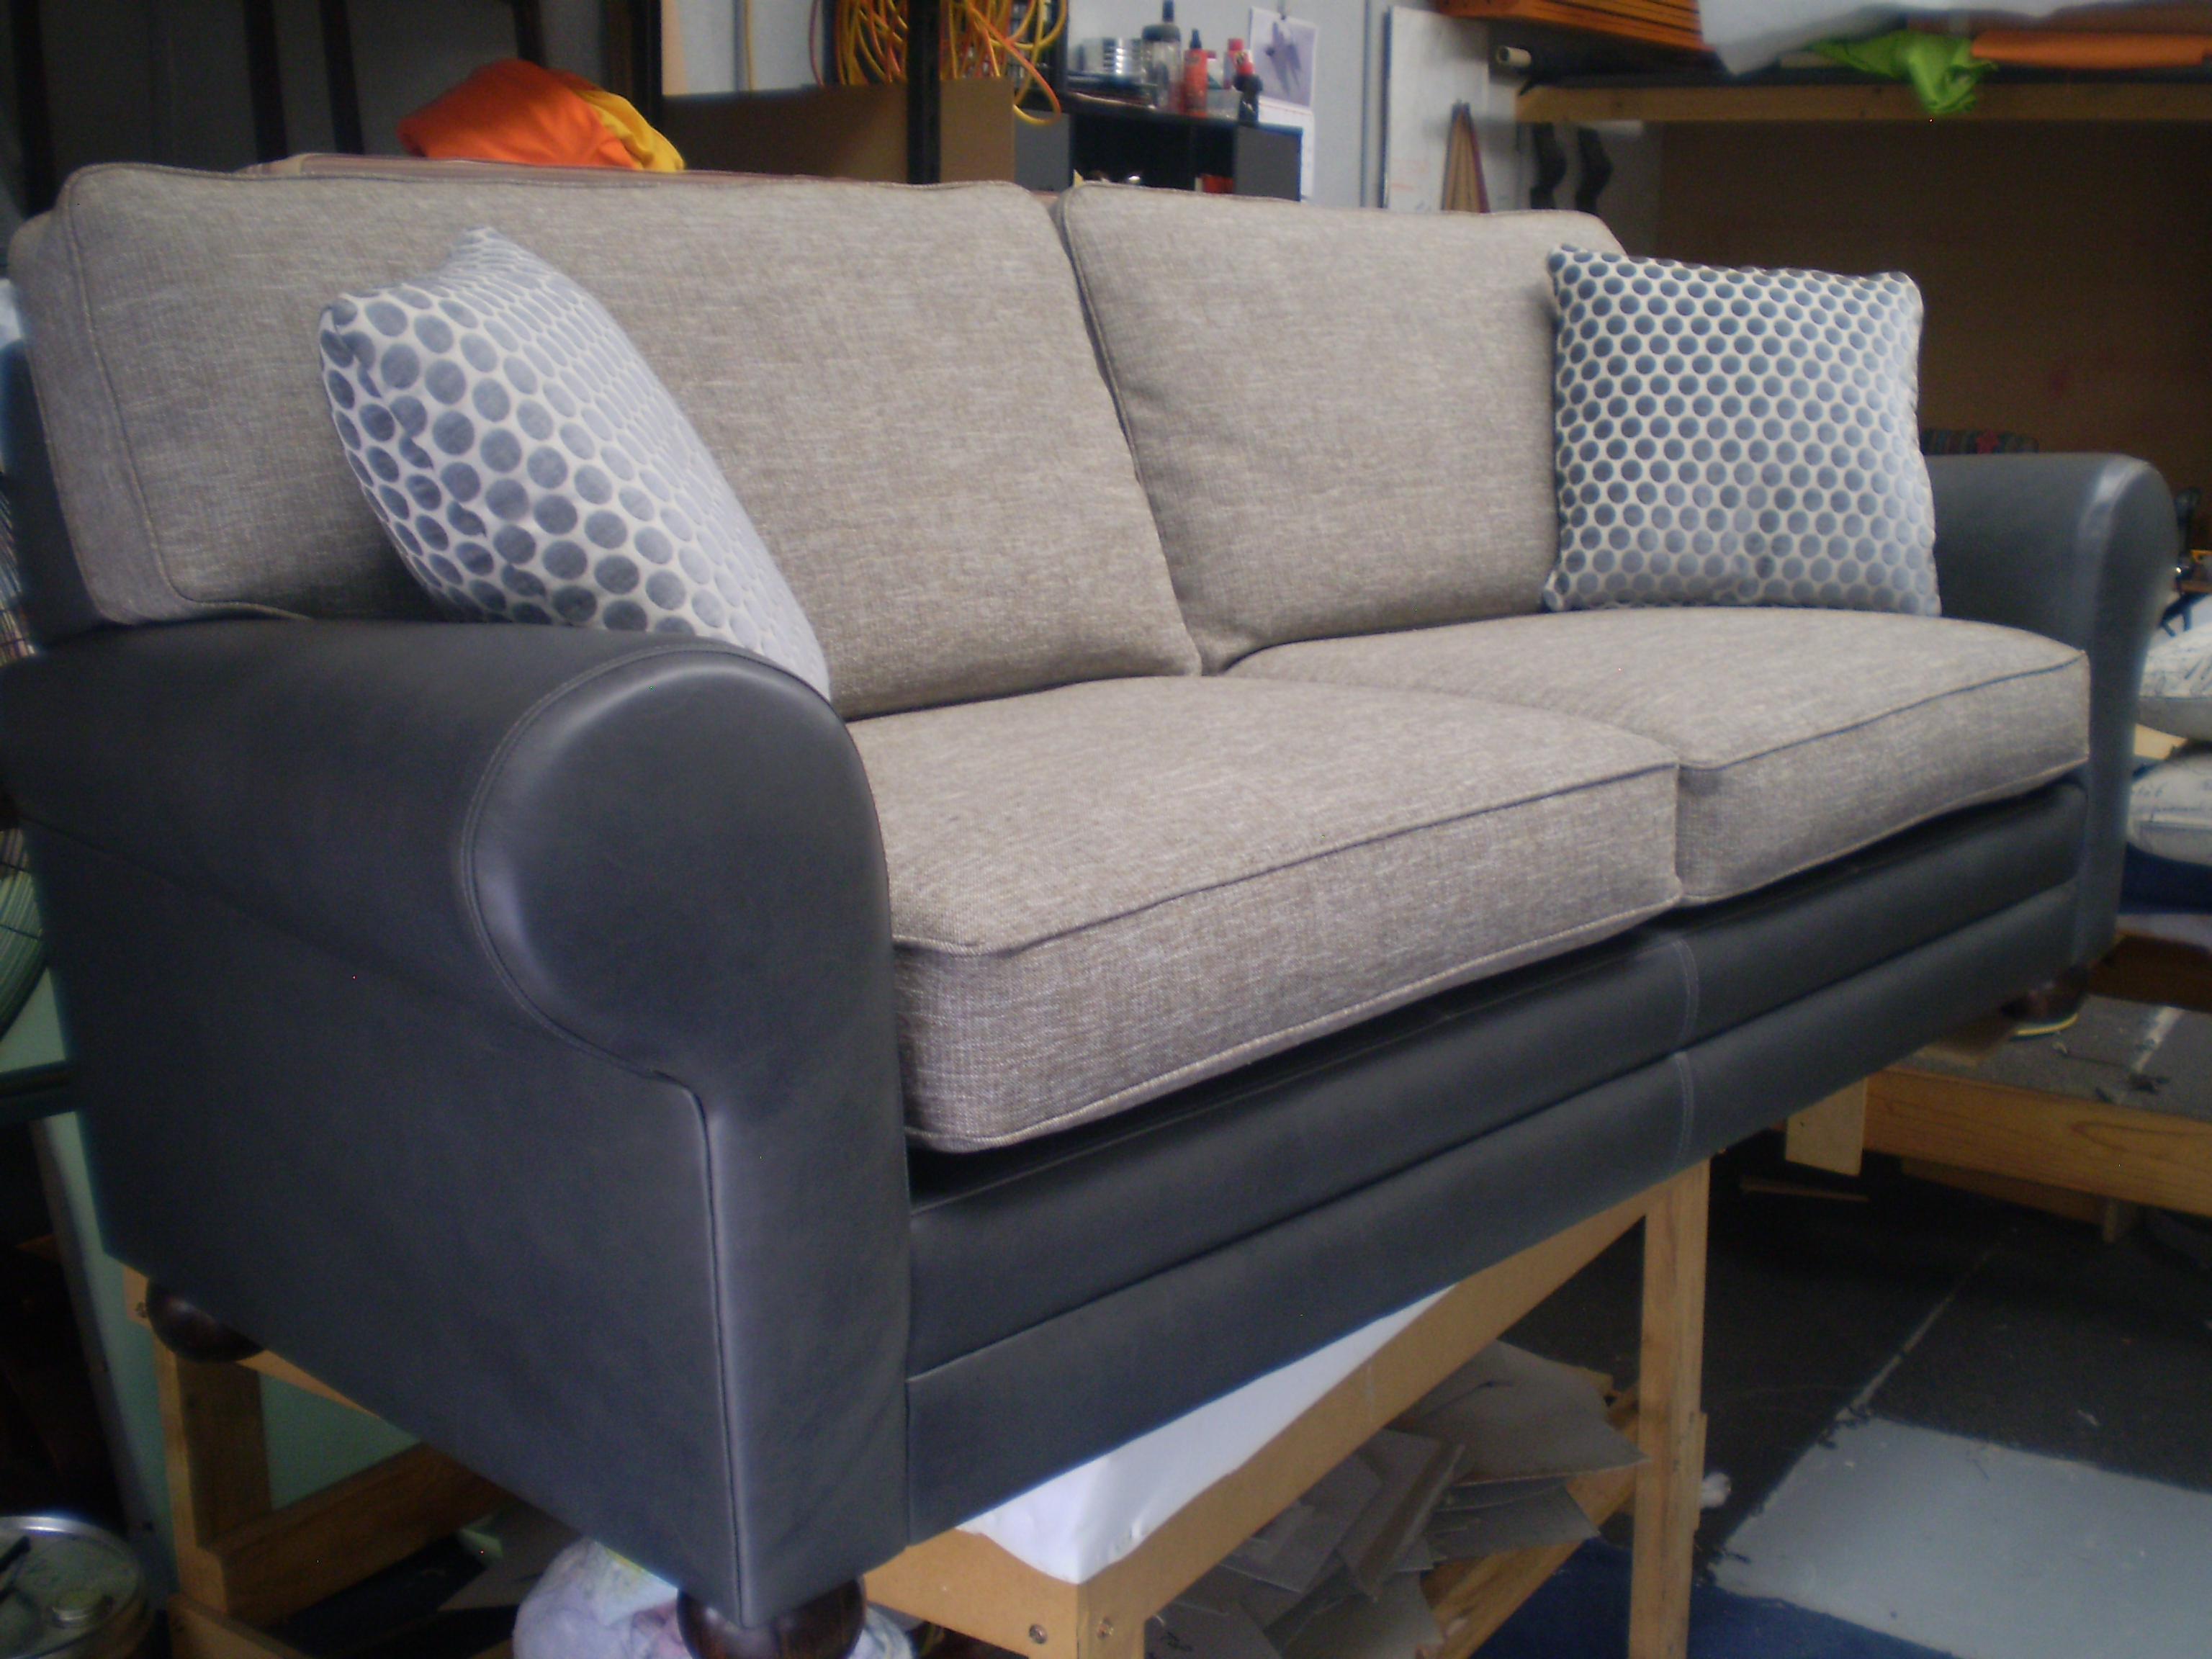 Reupholstered Sofas In Leather And Fabric Melbourne